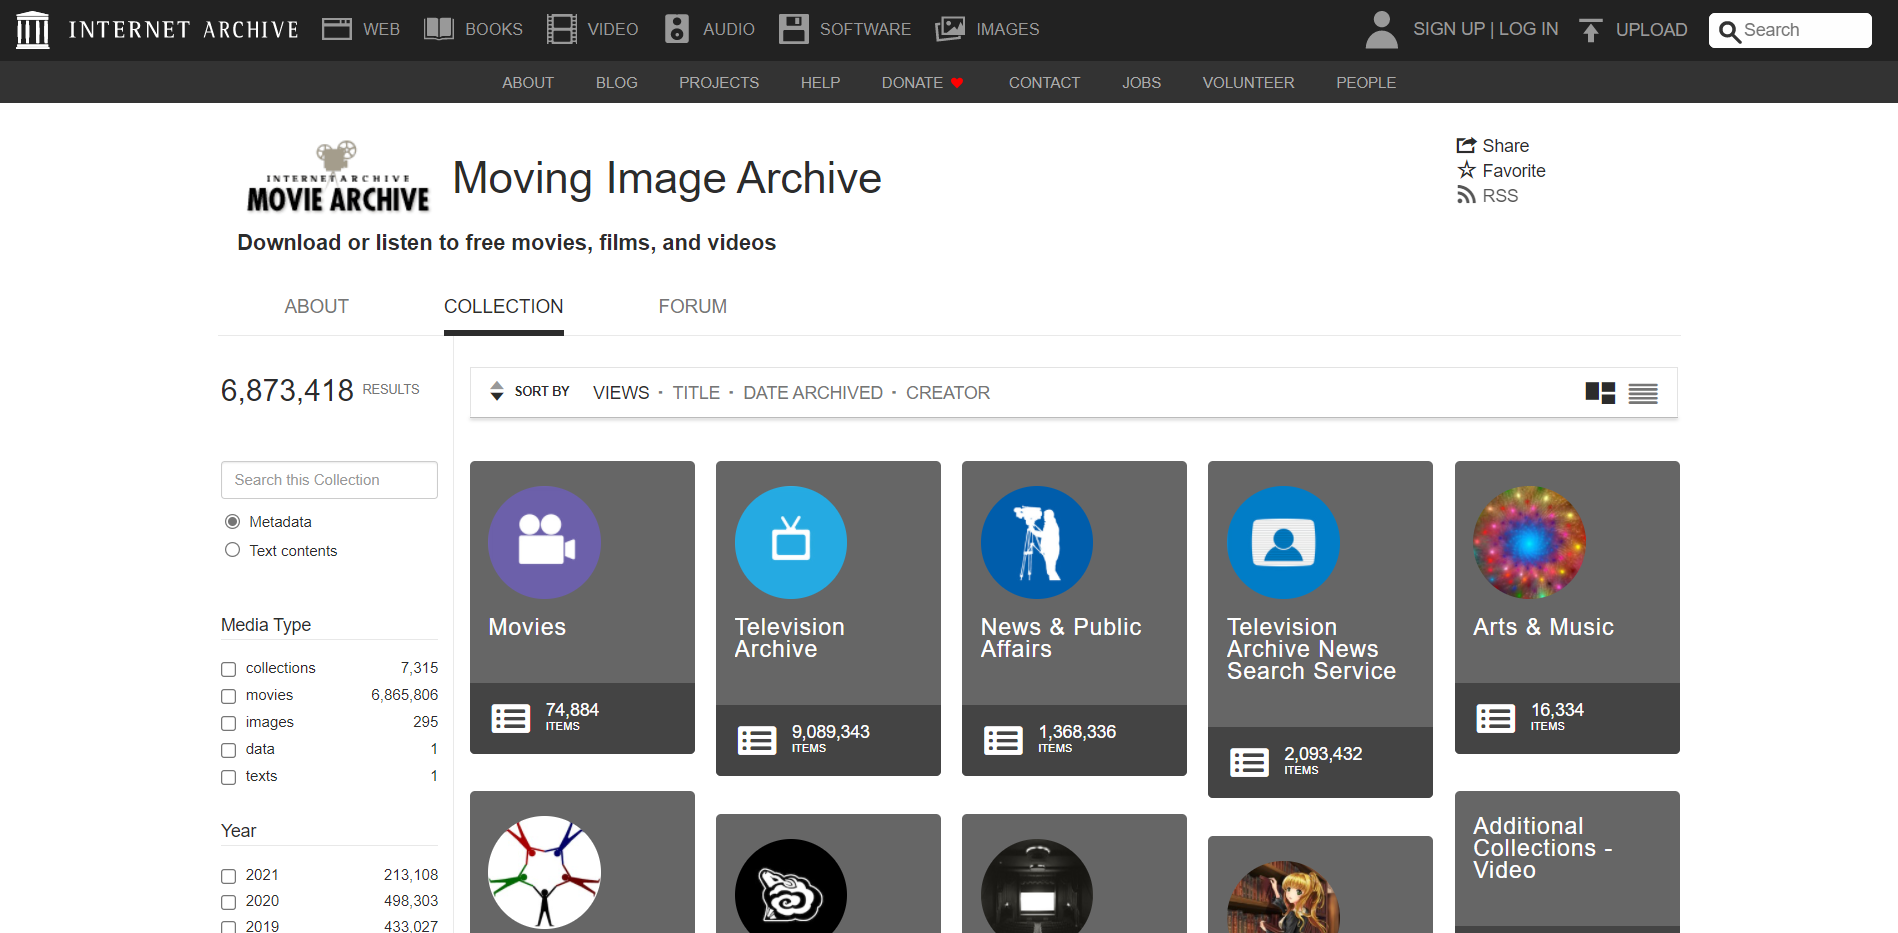 Best YouTube Alternatives - The Internet Archive (The Movies Archive)